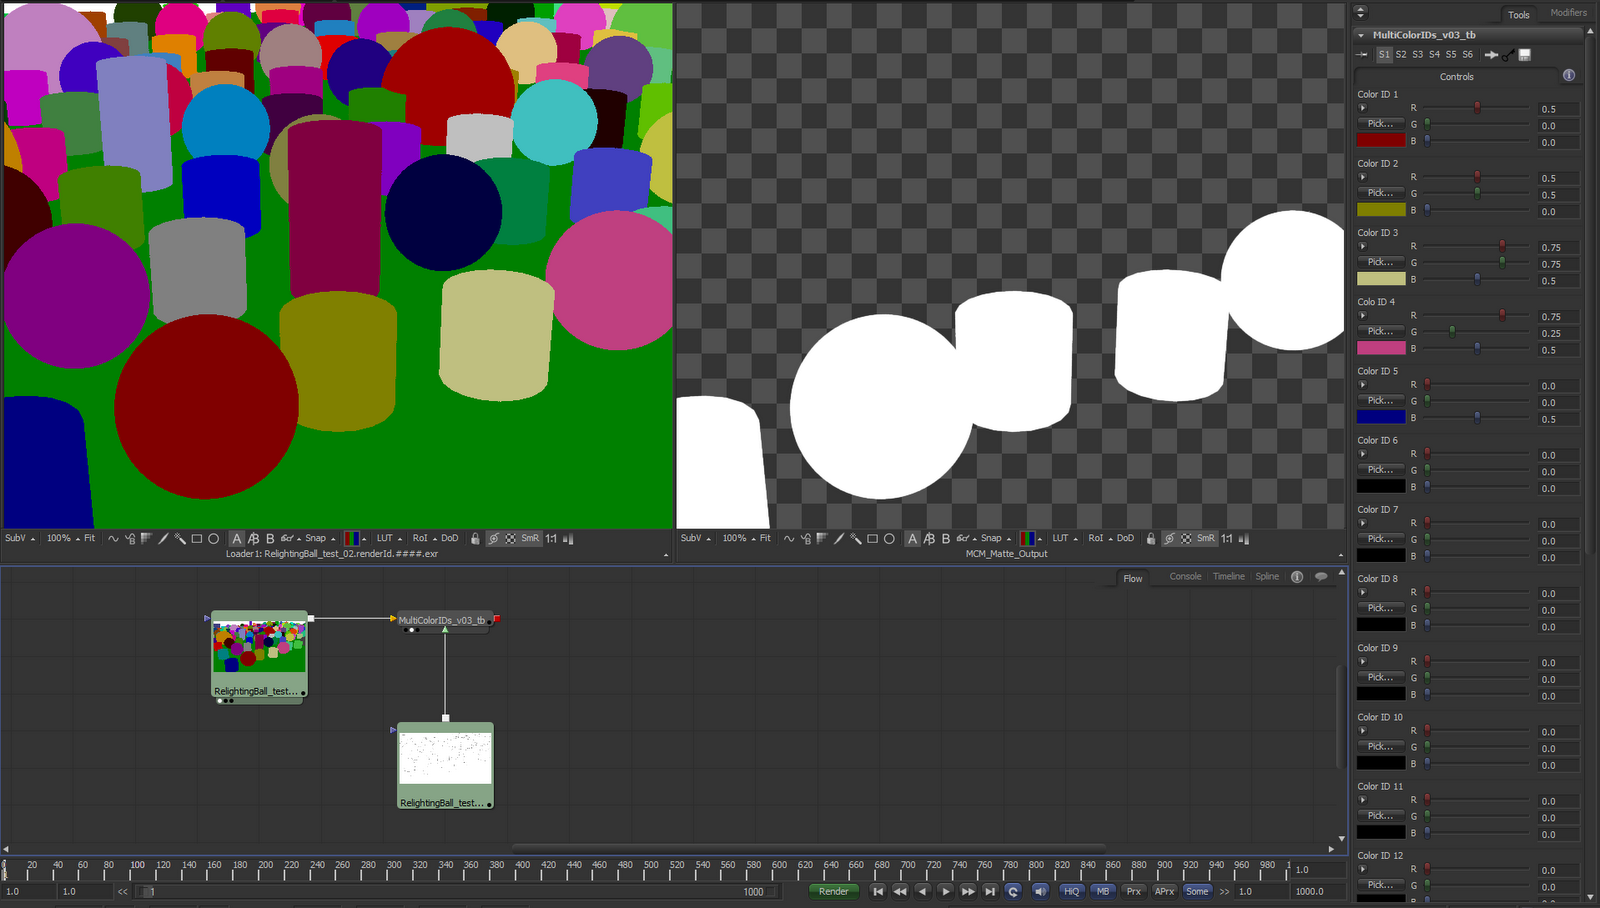 thomas banner fusion macro for using v ray renderid and coverage passes